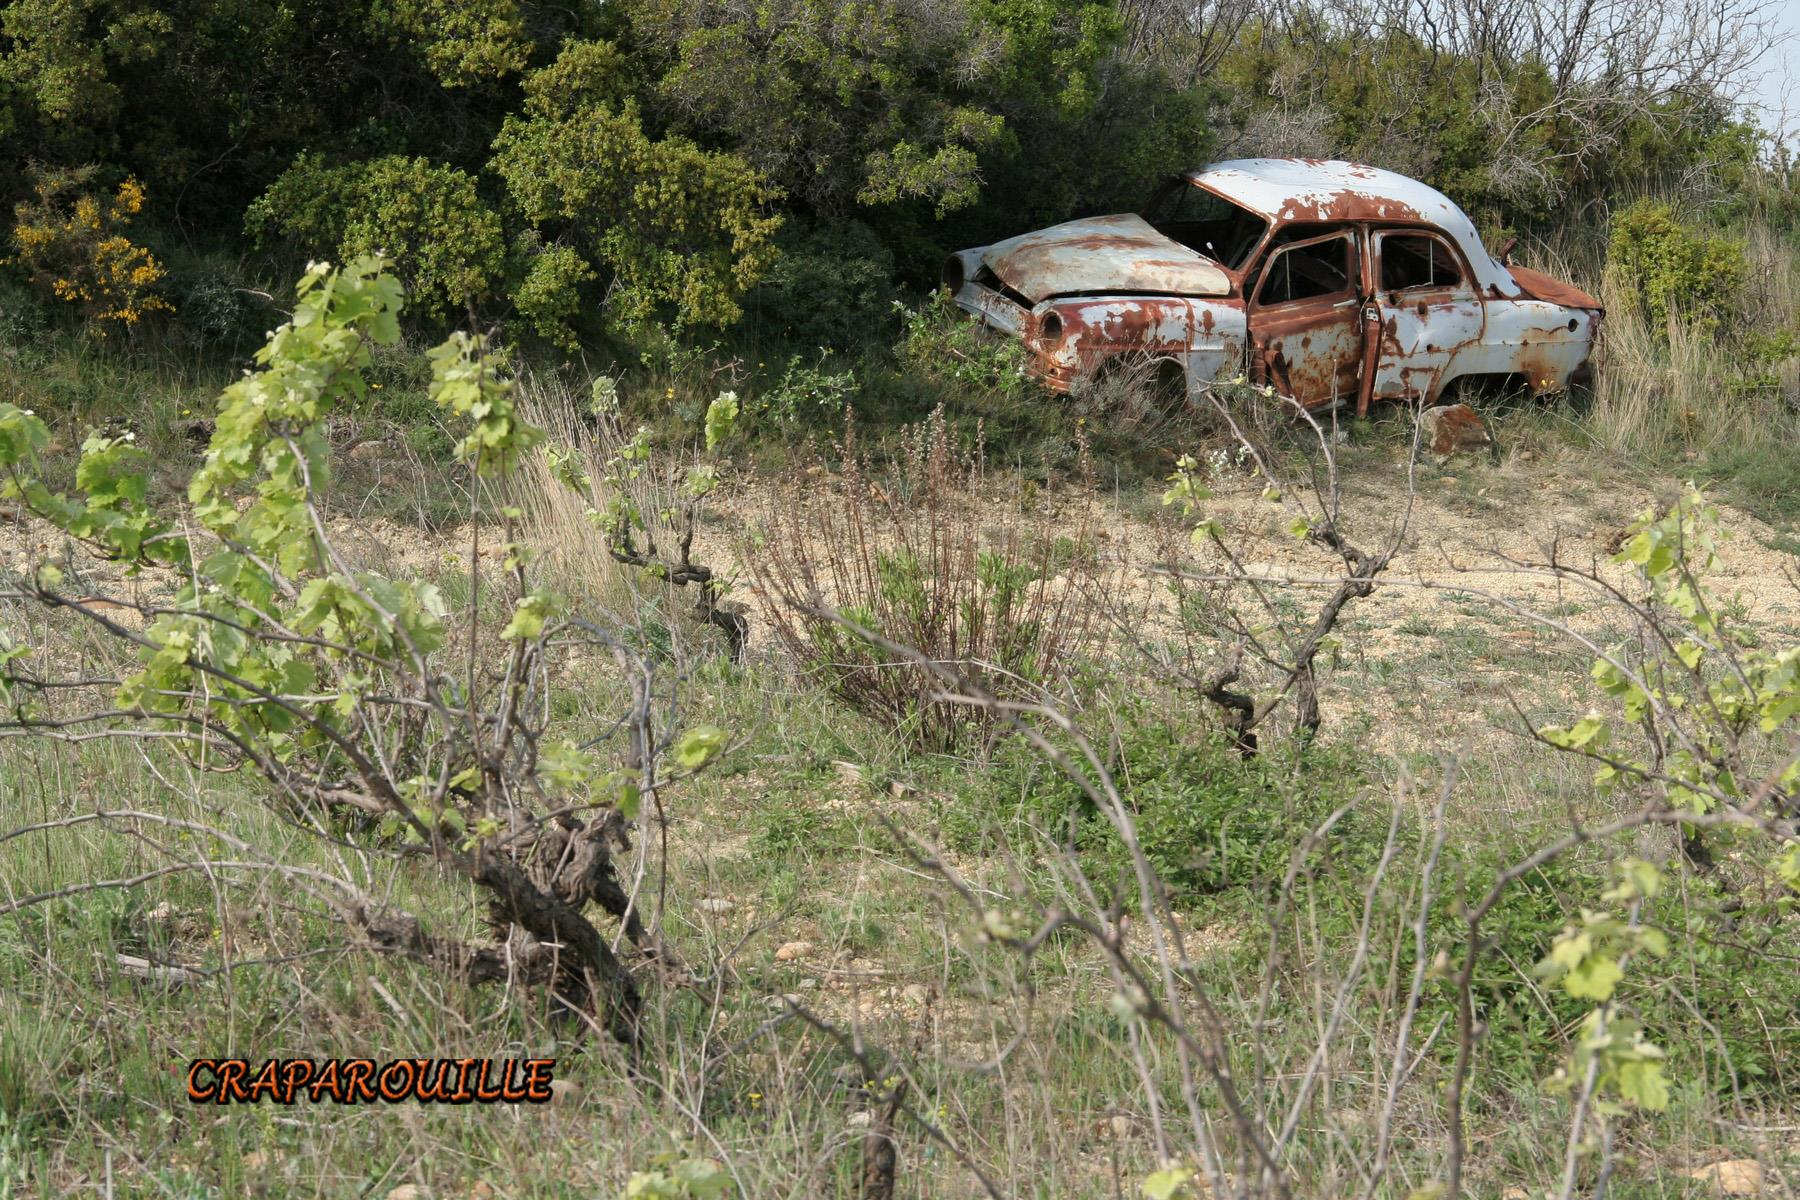 Photography-Diamonds-in-Rust-Craparouille-41